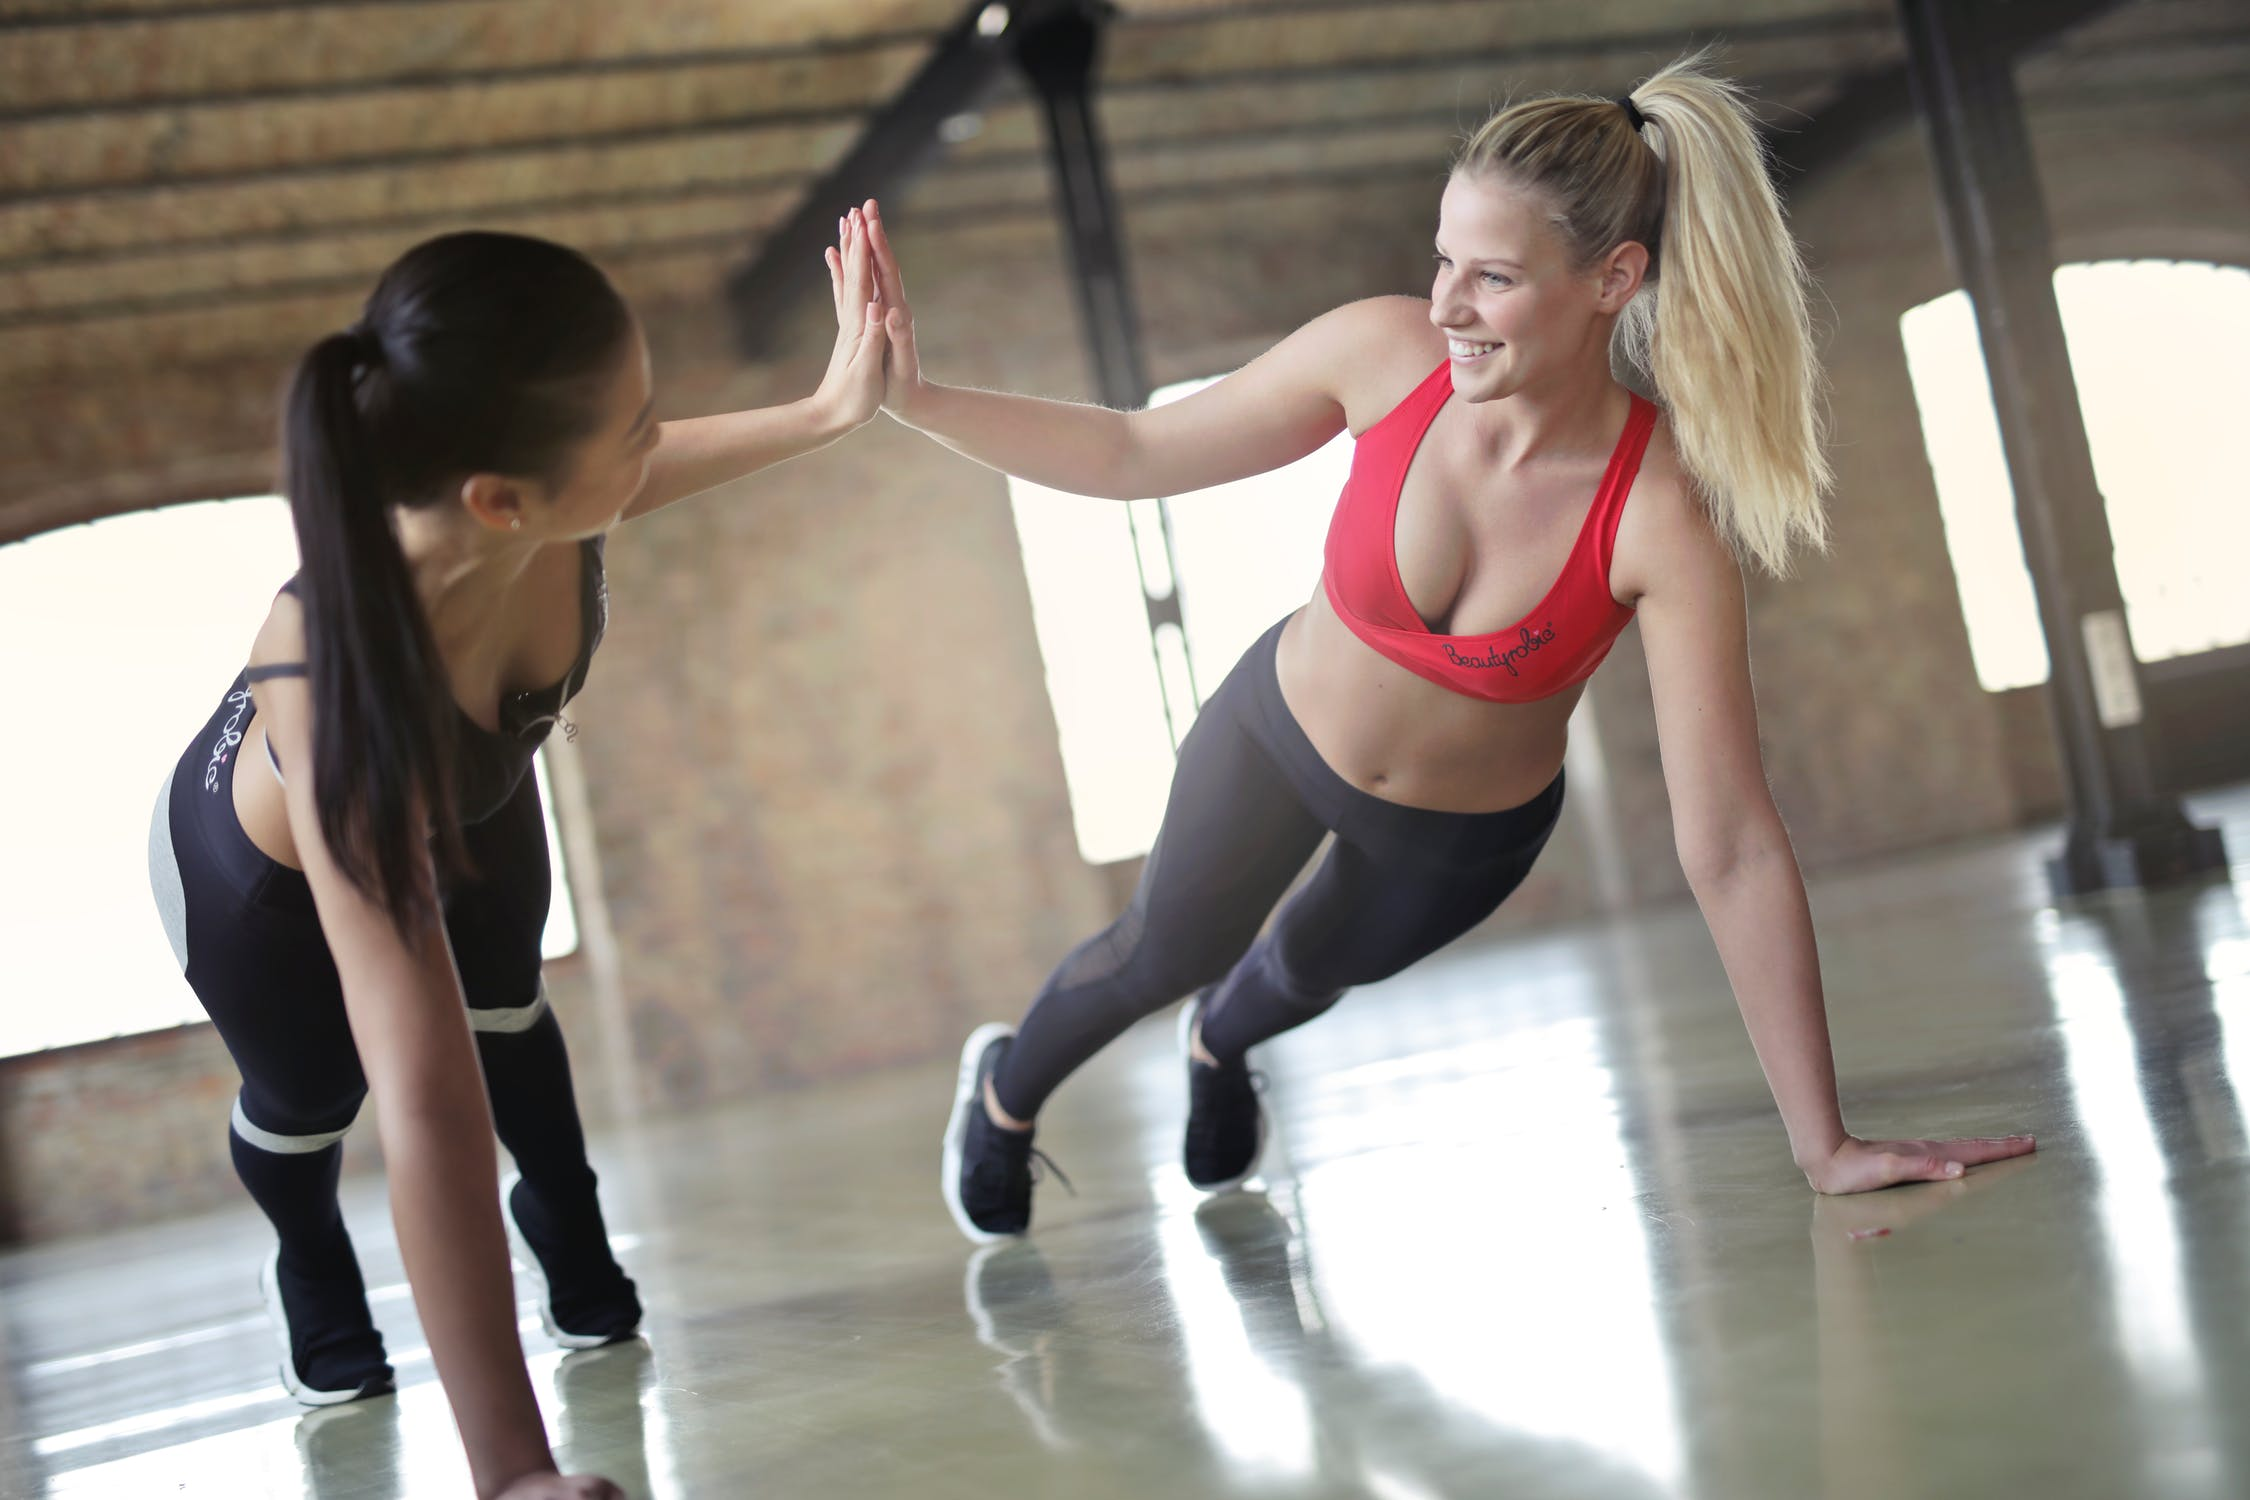 7 Ways to Keep Your Health in Tip Top Shape